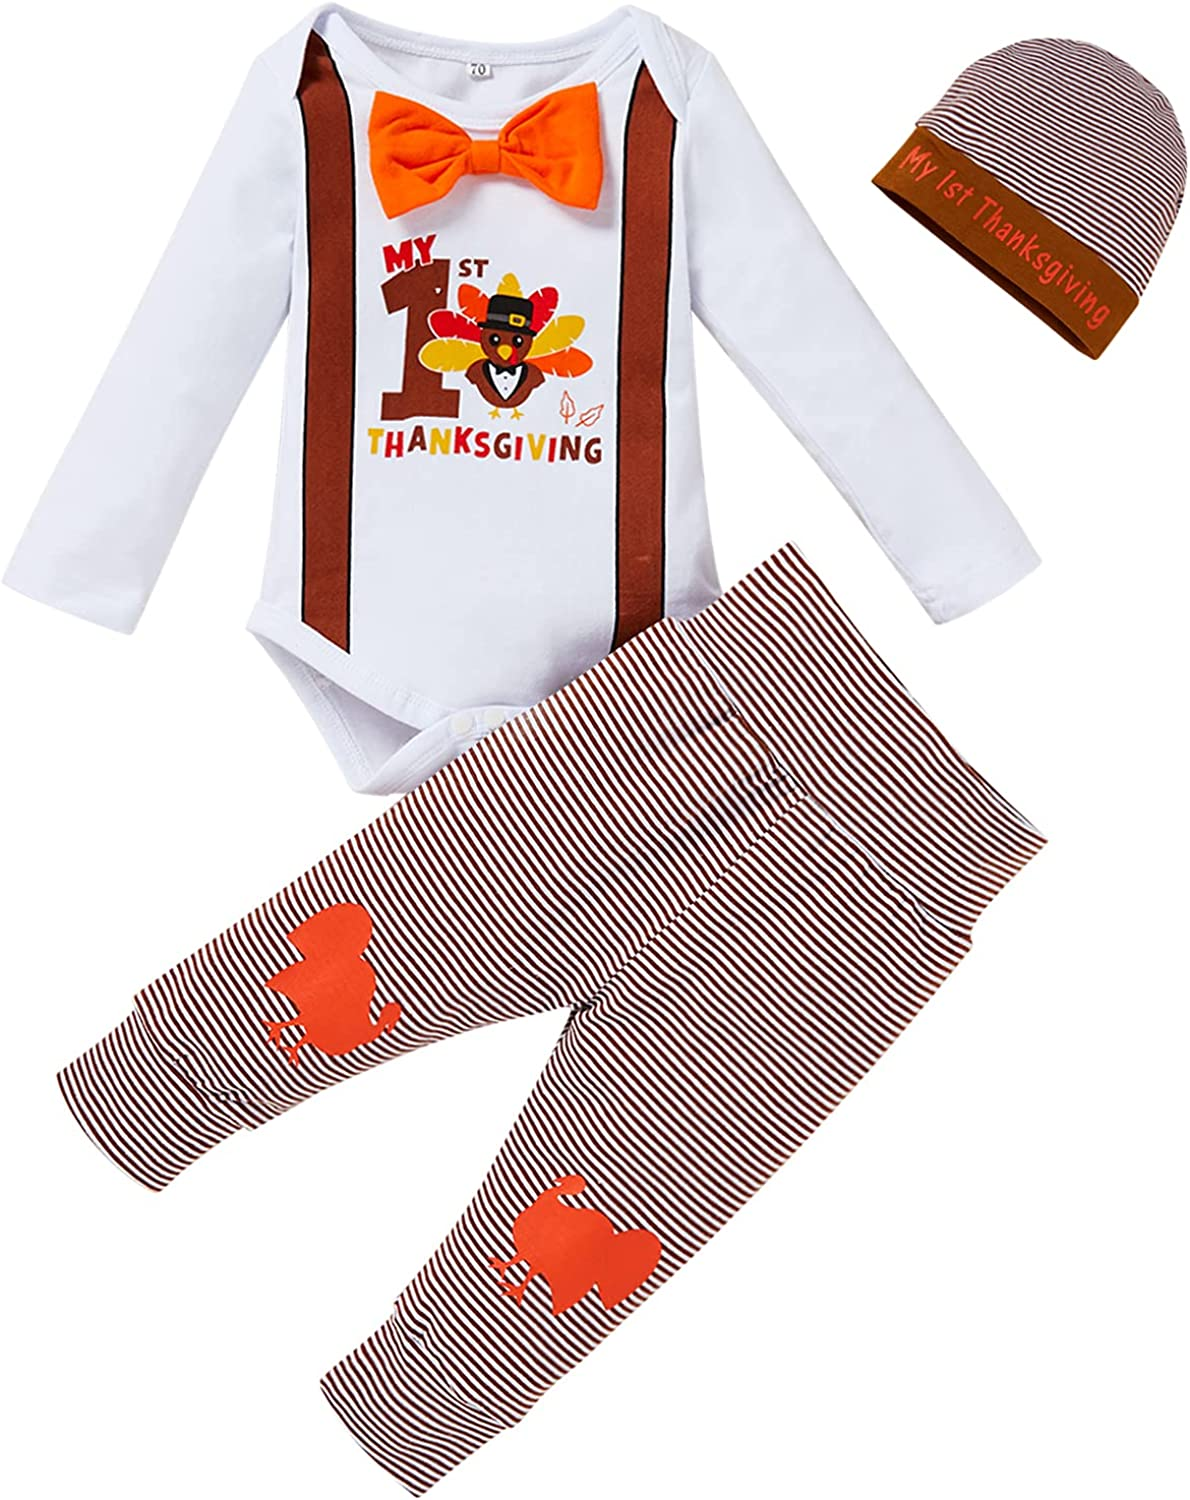 Newborn Baby Boy My 1st Thanksgiving Clothes Set Gentleman Turkey Romper Striped Pants with Hat 3PCS Outfits